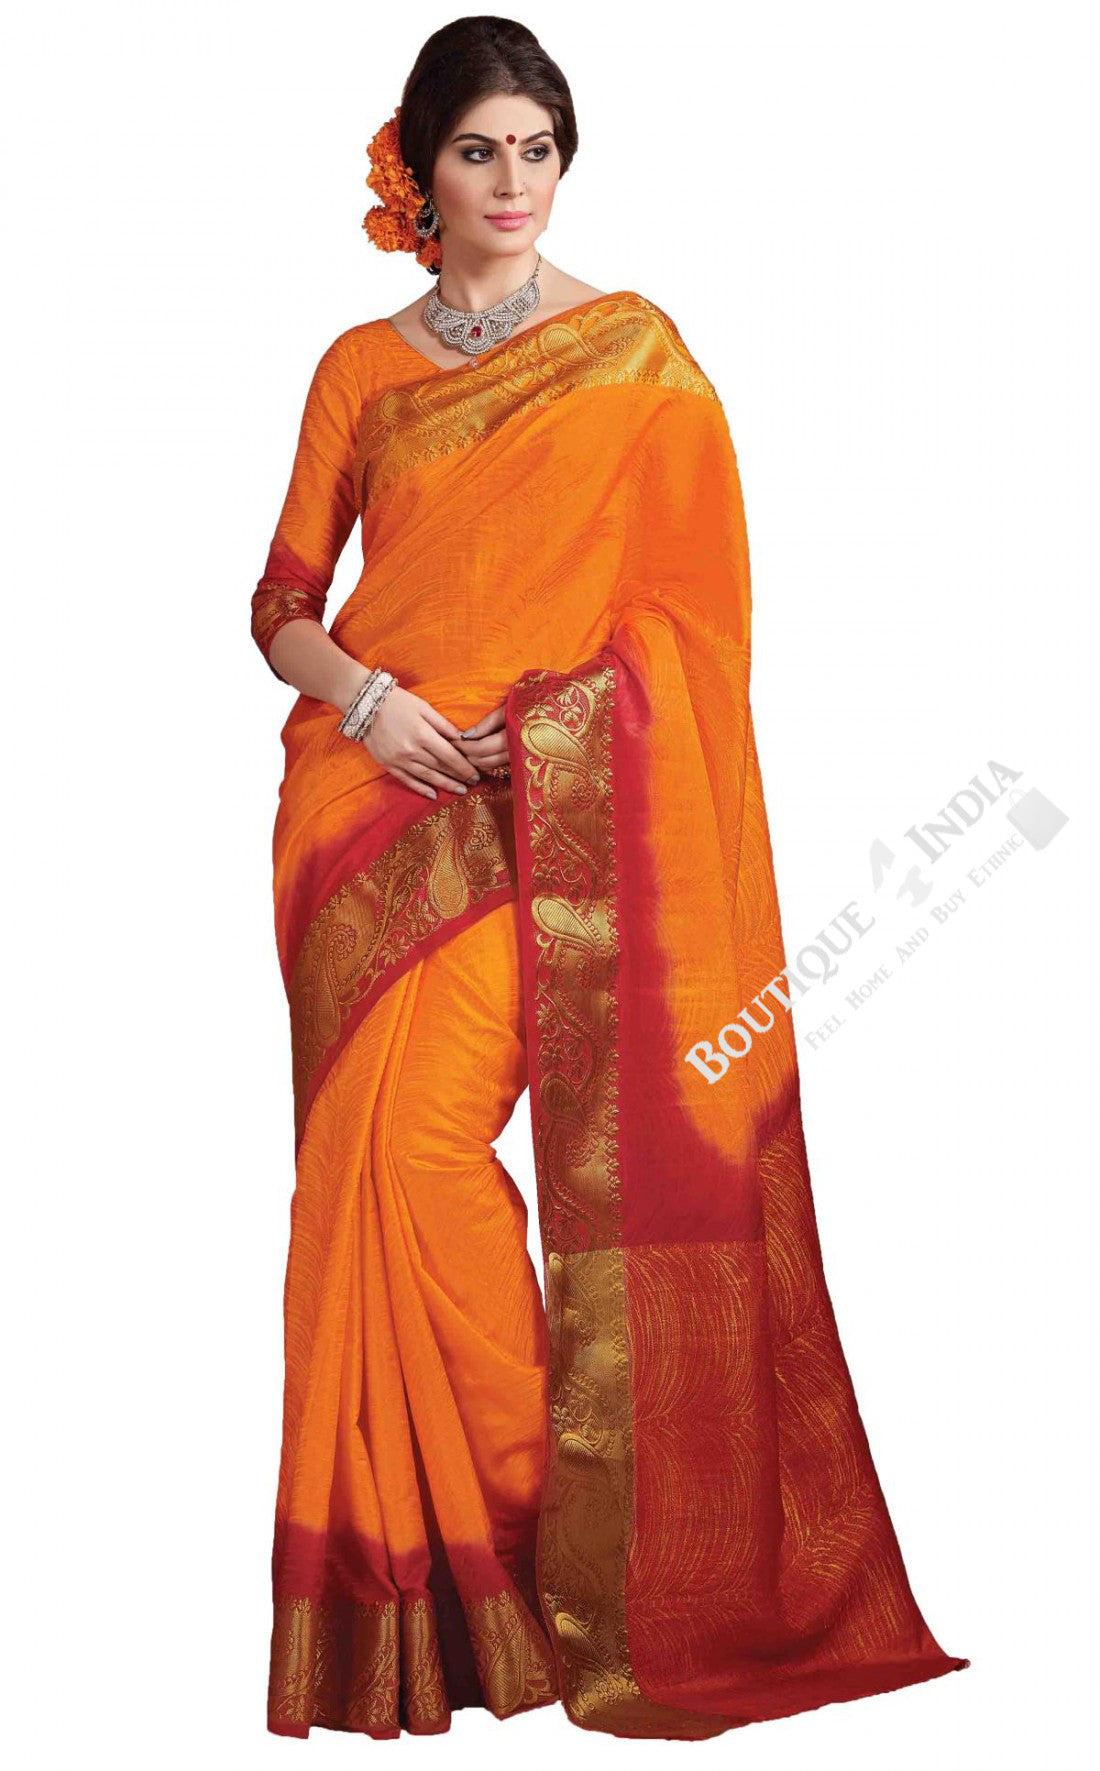 Jacquard Silk Saree in Orange, Maroon and Golden - Boutique4India Inc.